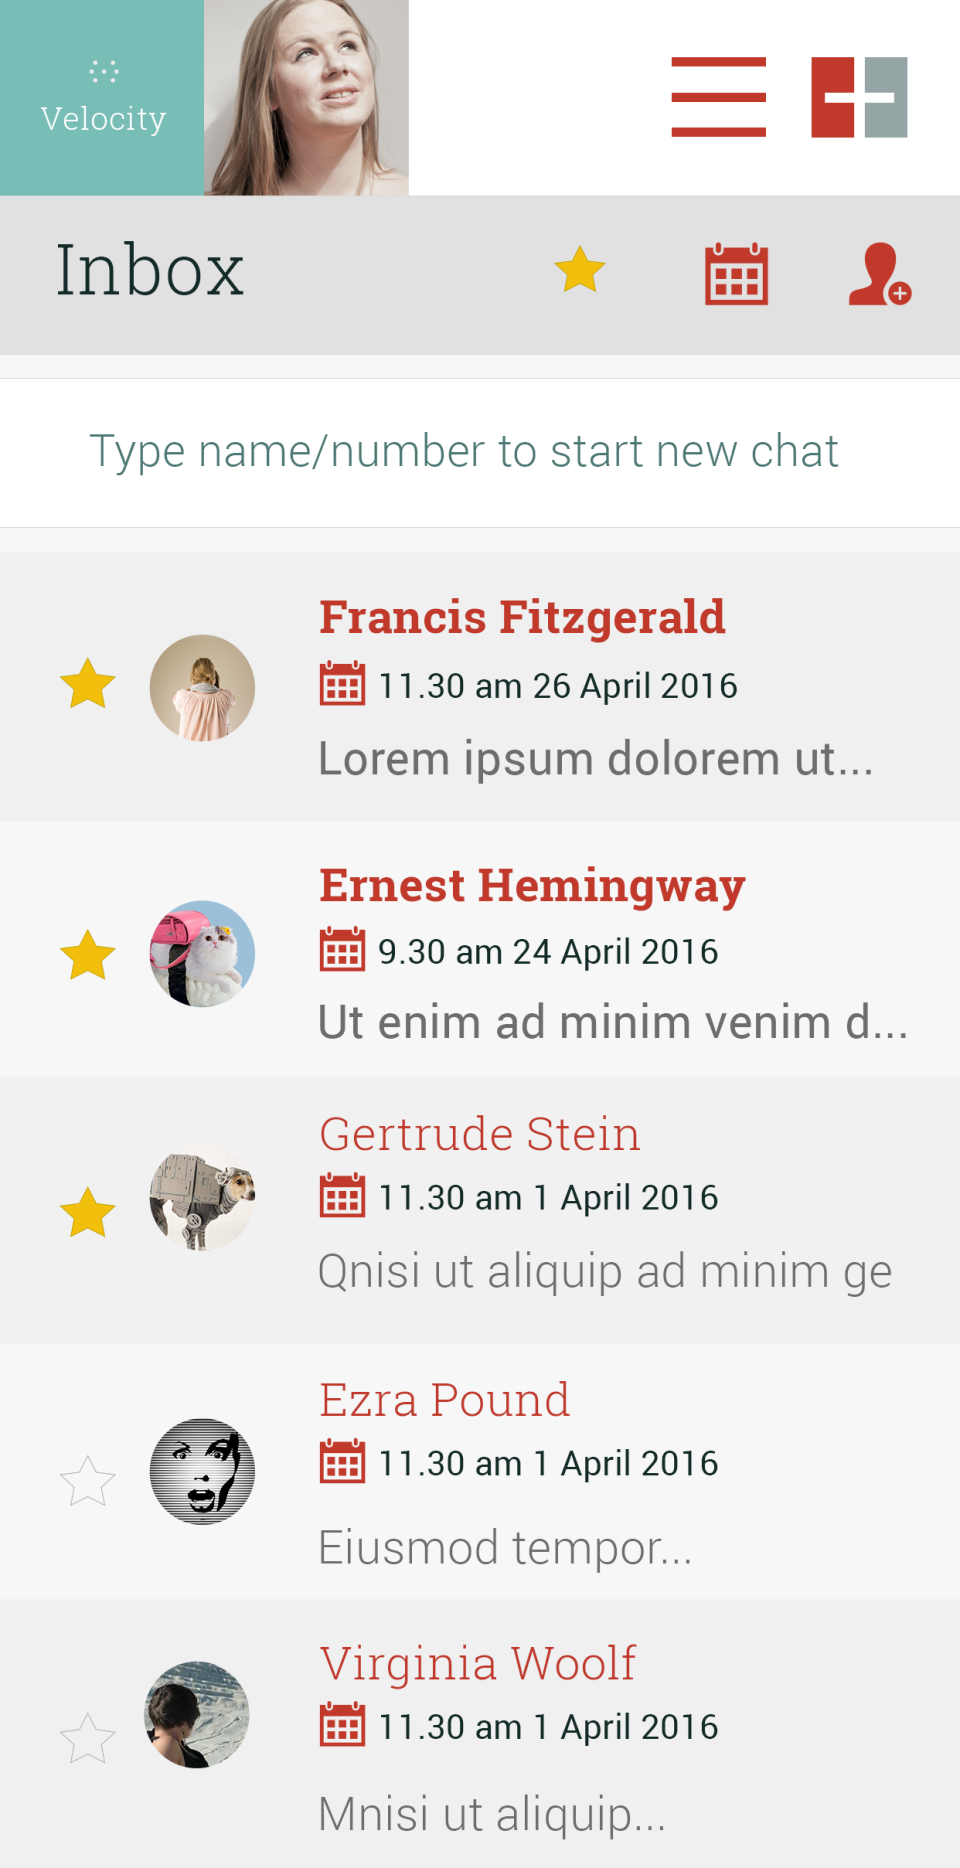 When subscribers reply back, users will receive the messages in their inbox